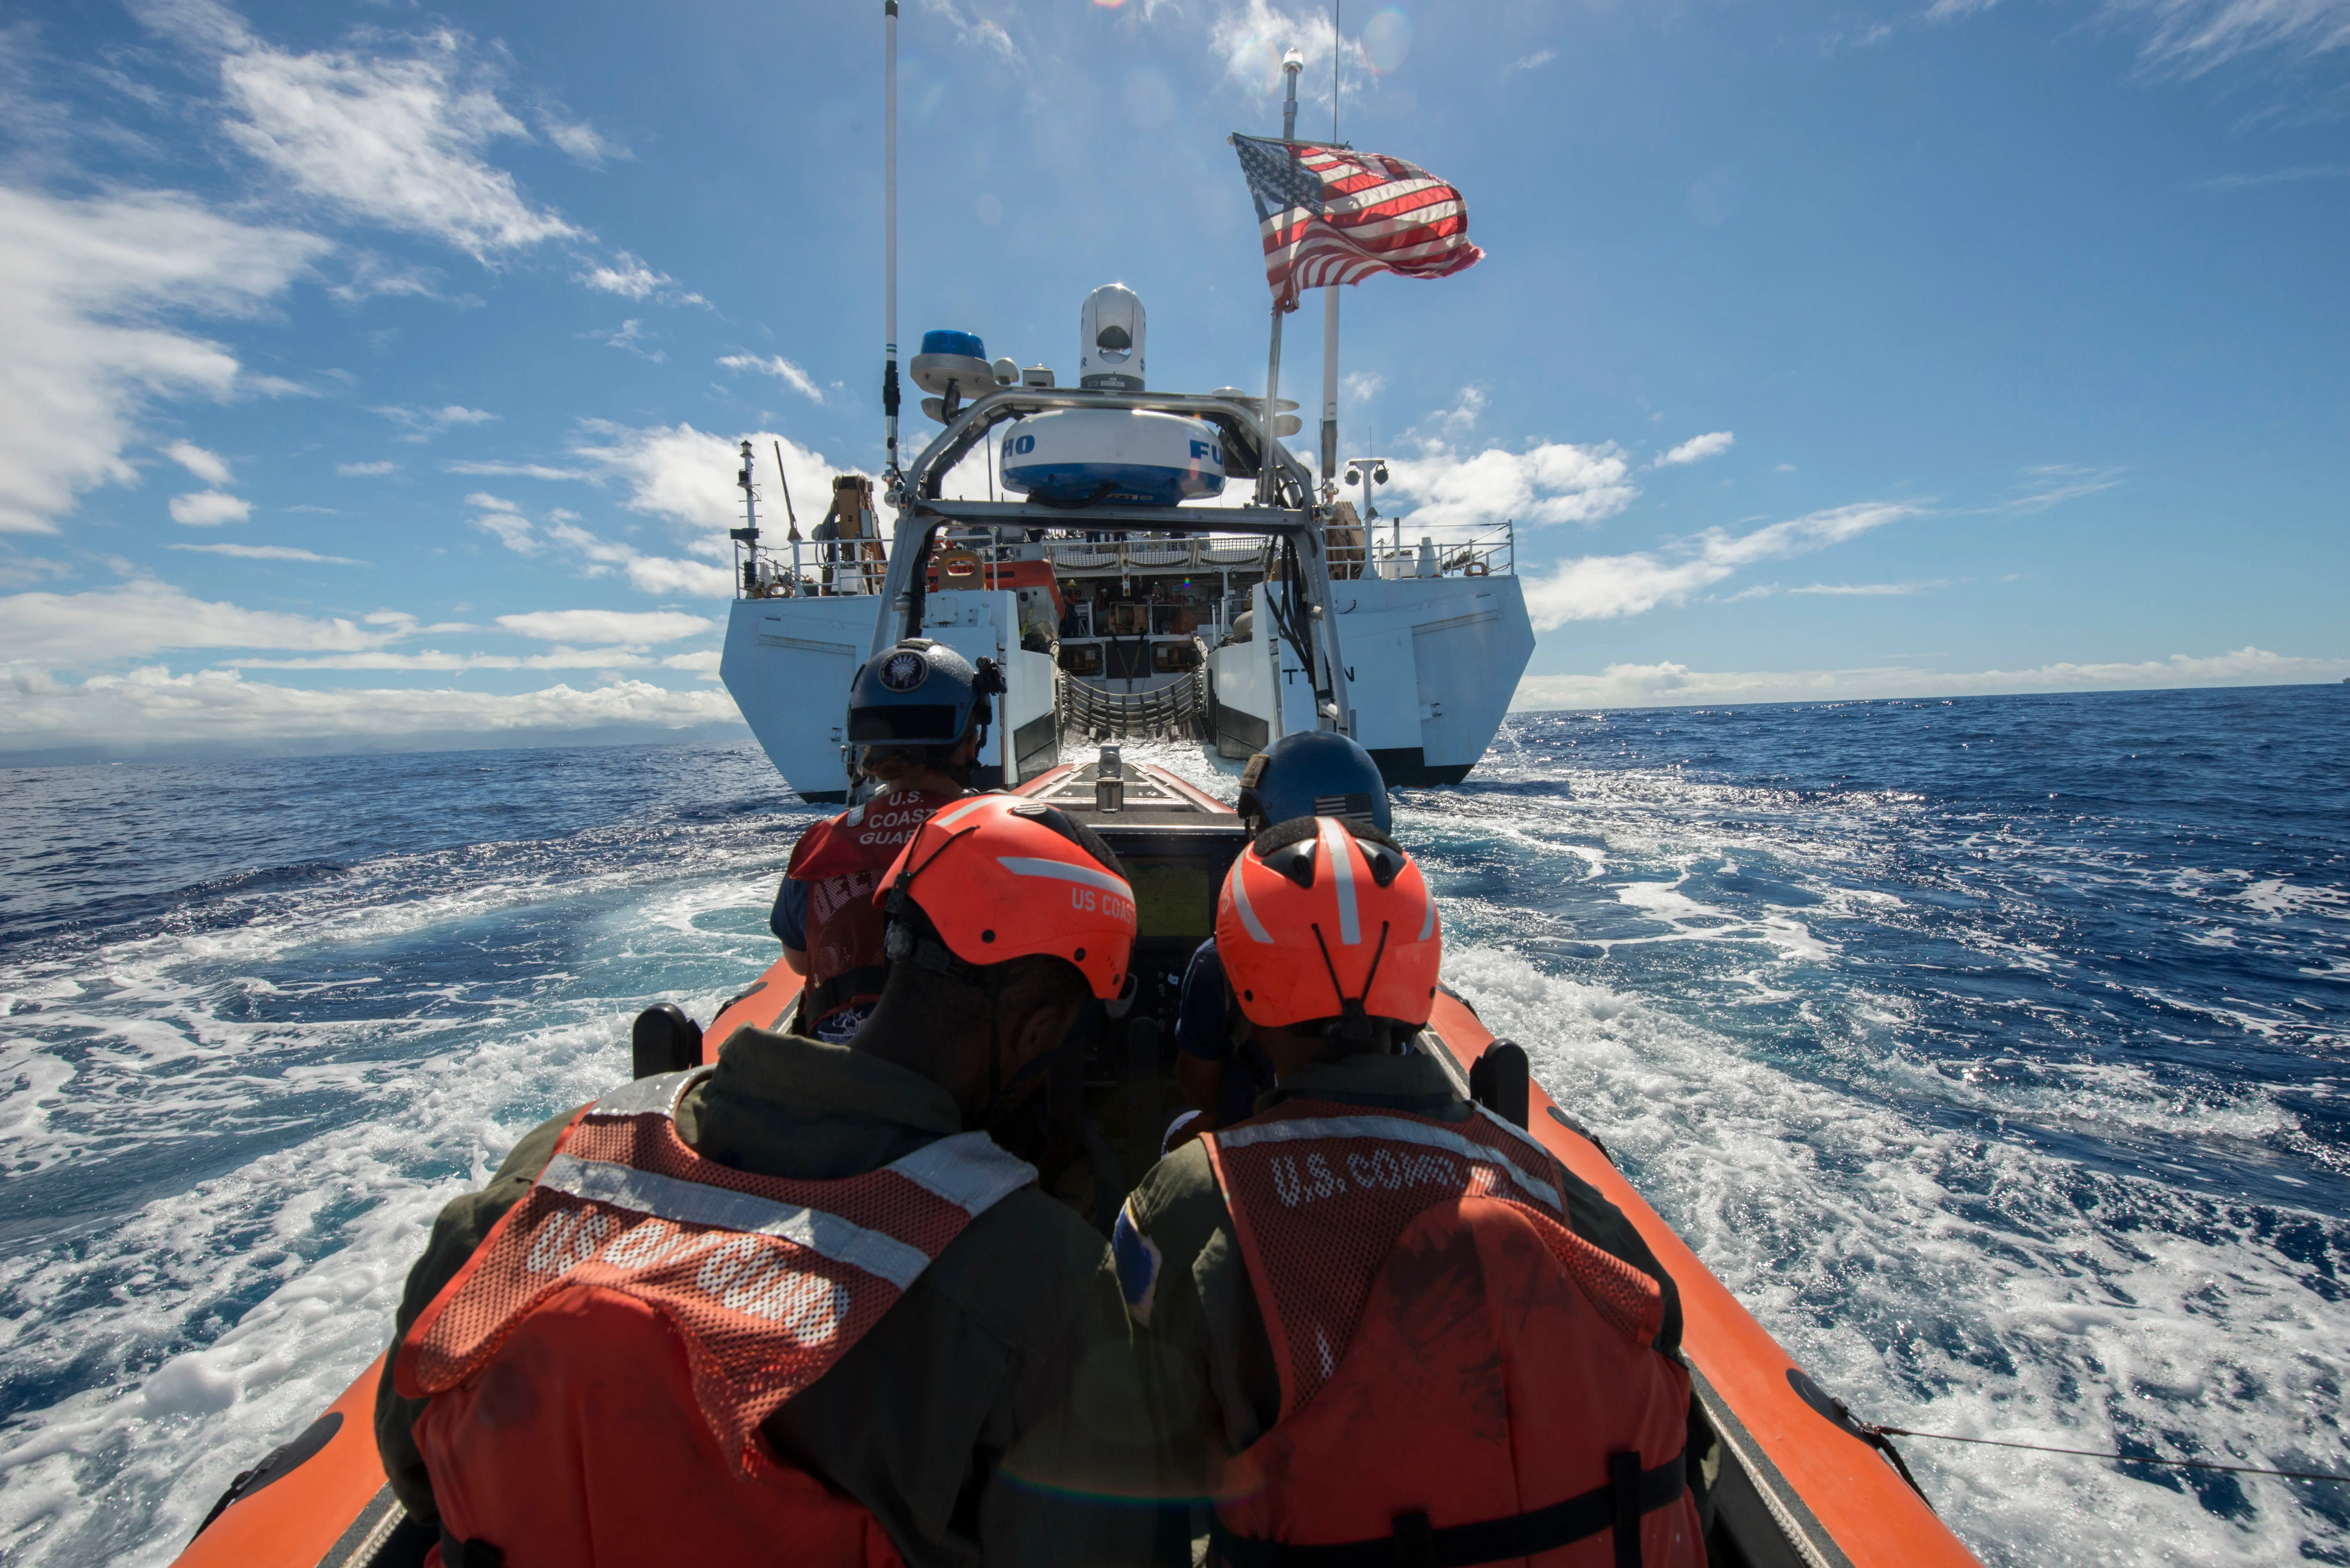 Coast guard RIMPAC